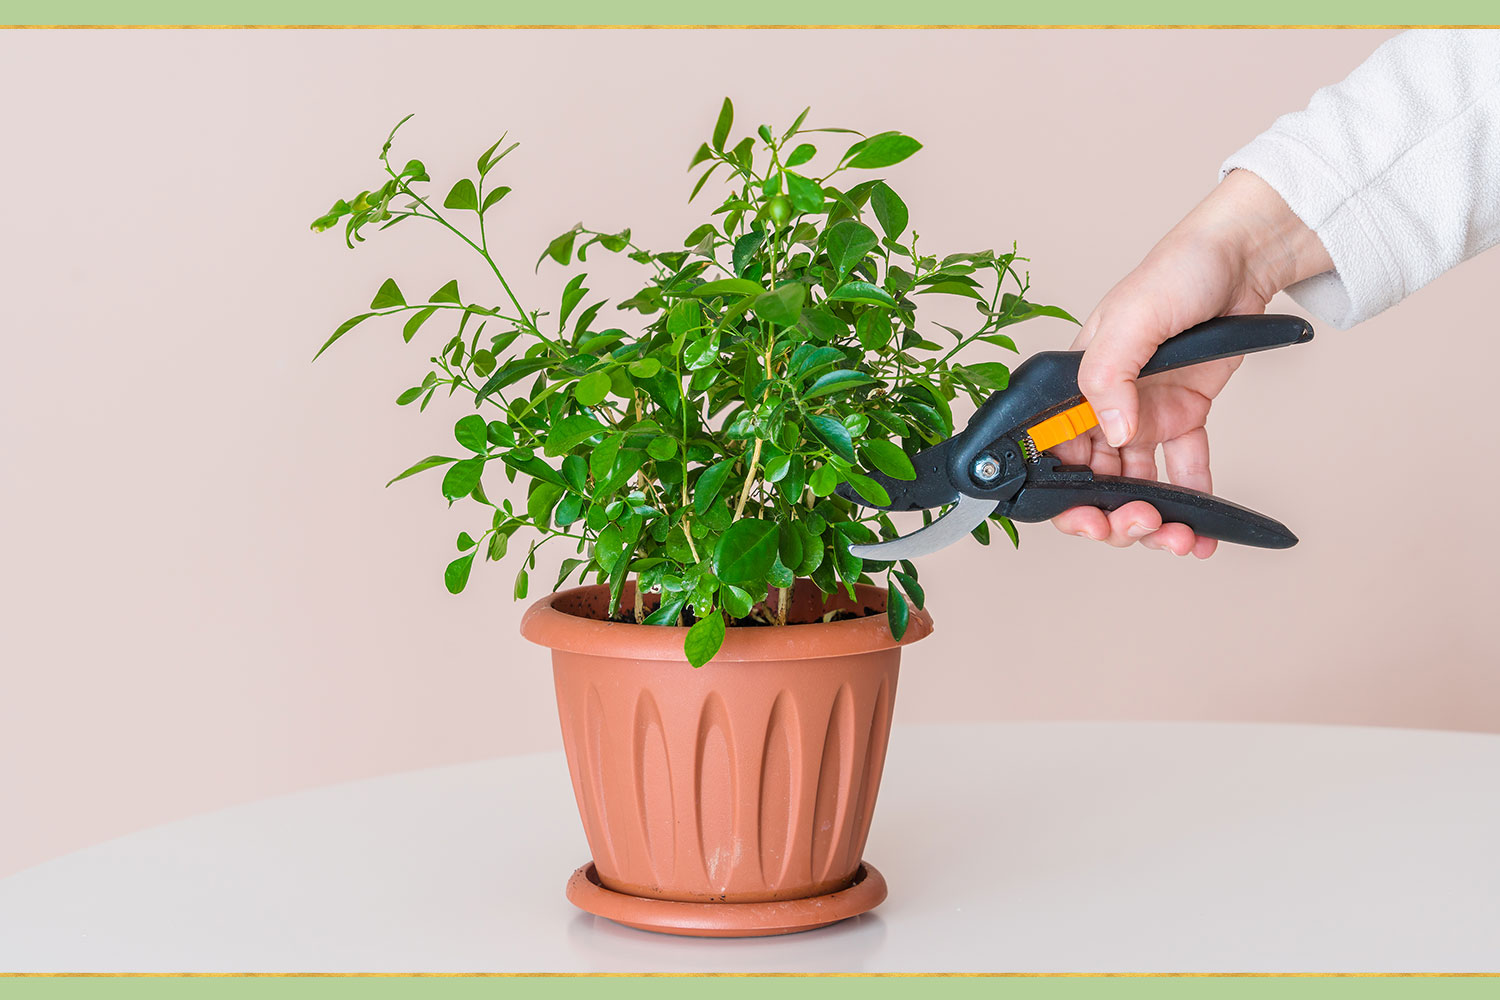 pruning green plant in pot